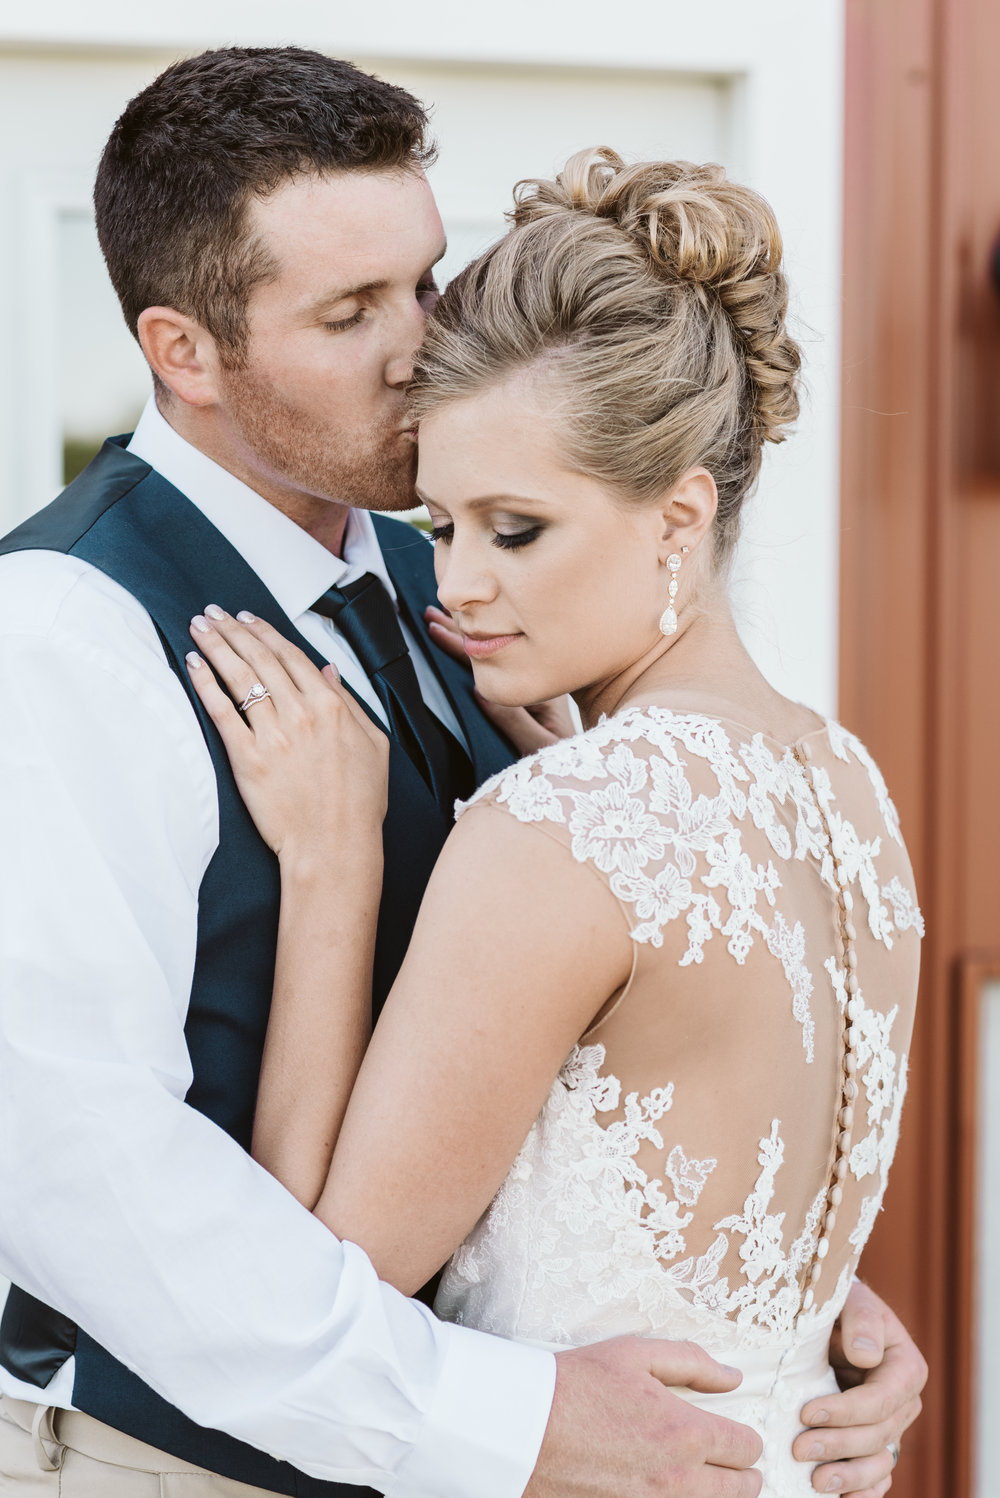 ort Atkinson Wedding Photographer